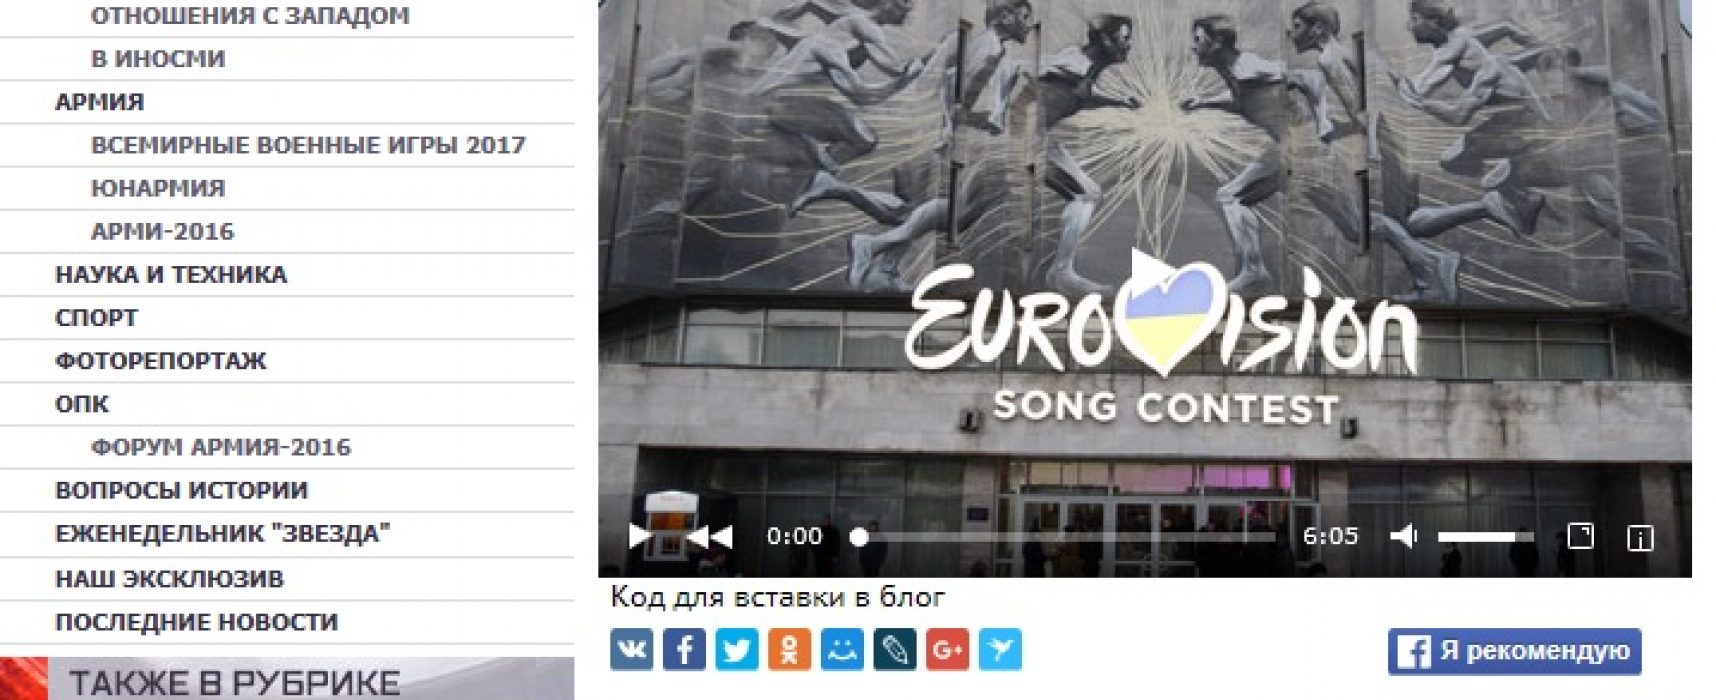 Fake: Ukraine Has No Money for Eurovision 2017